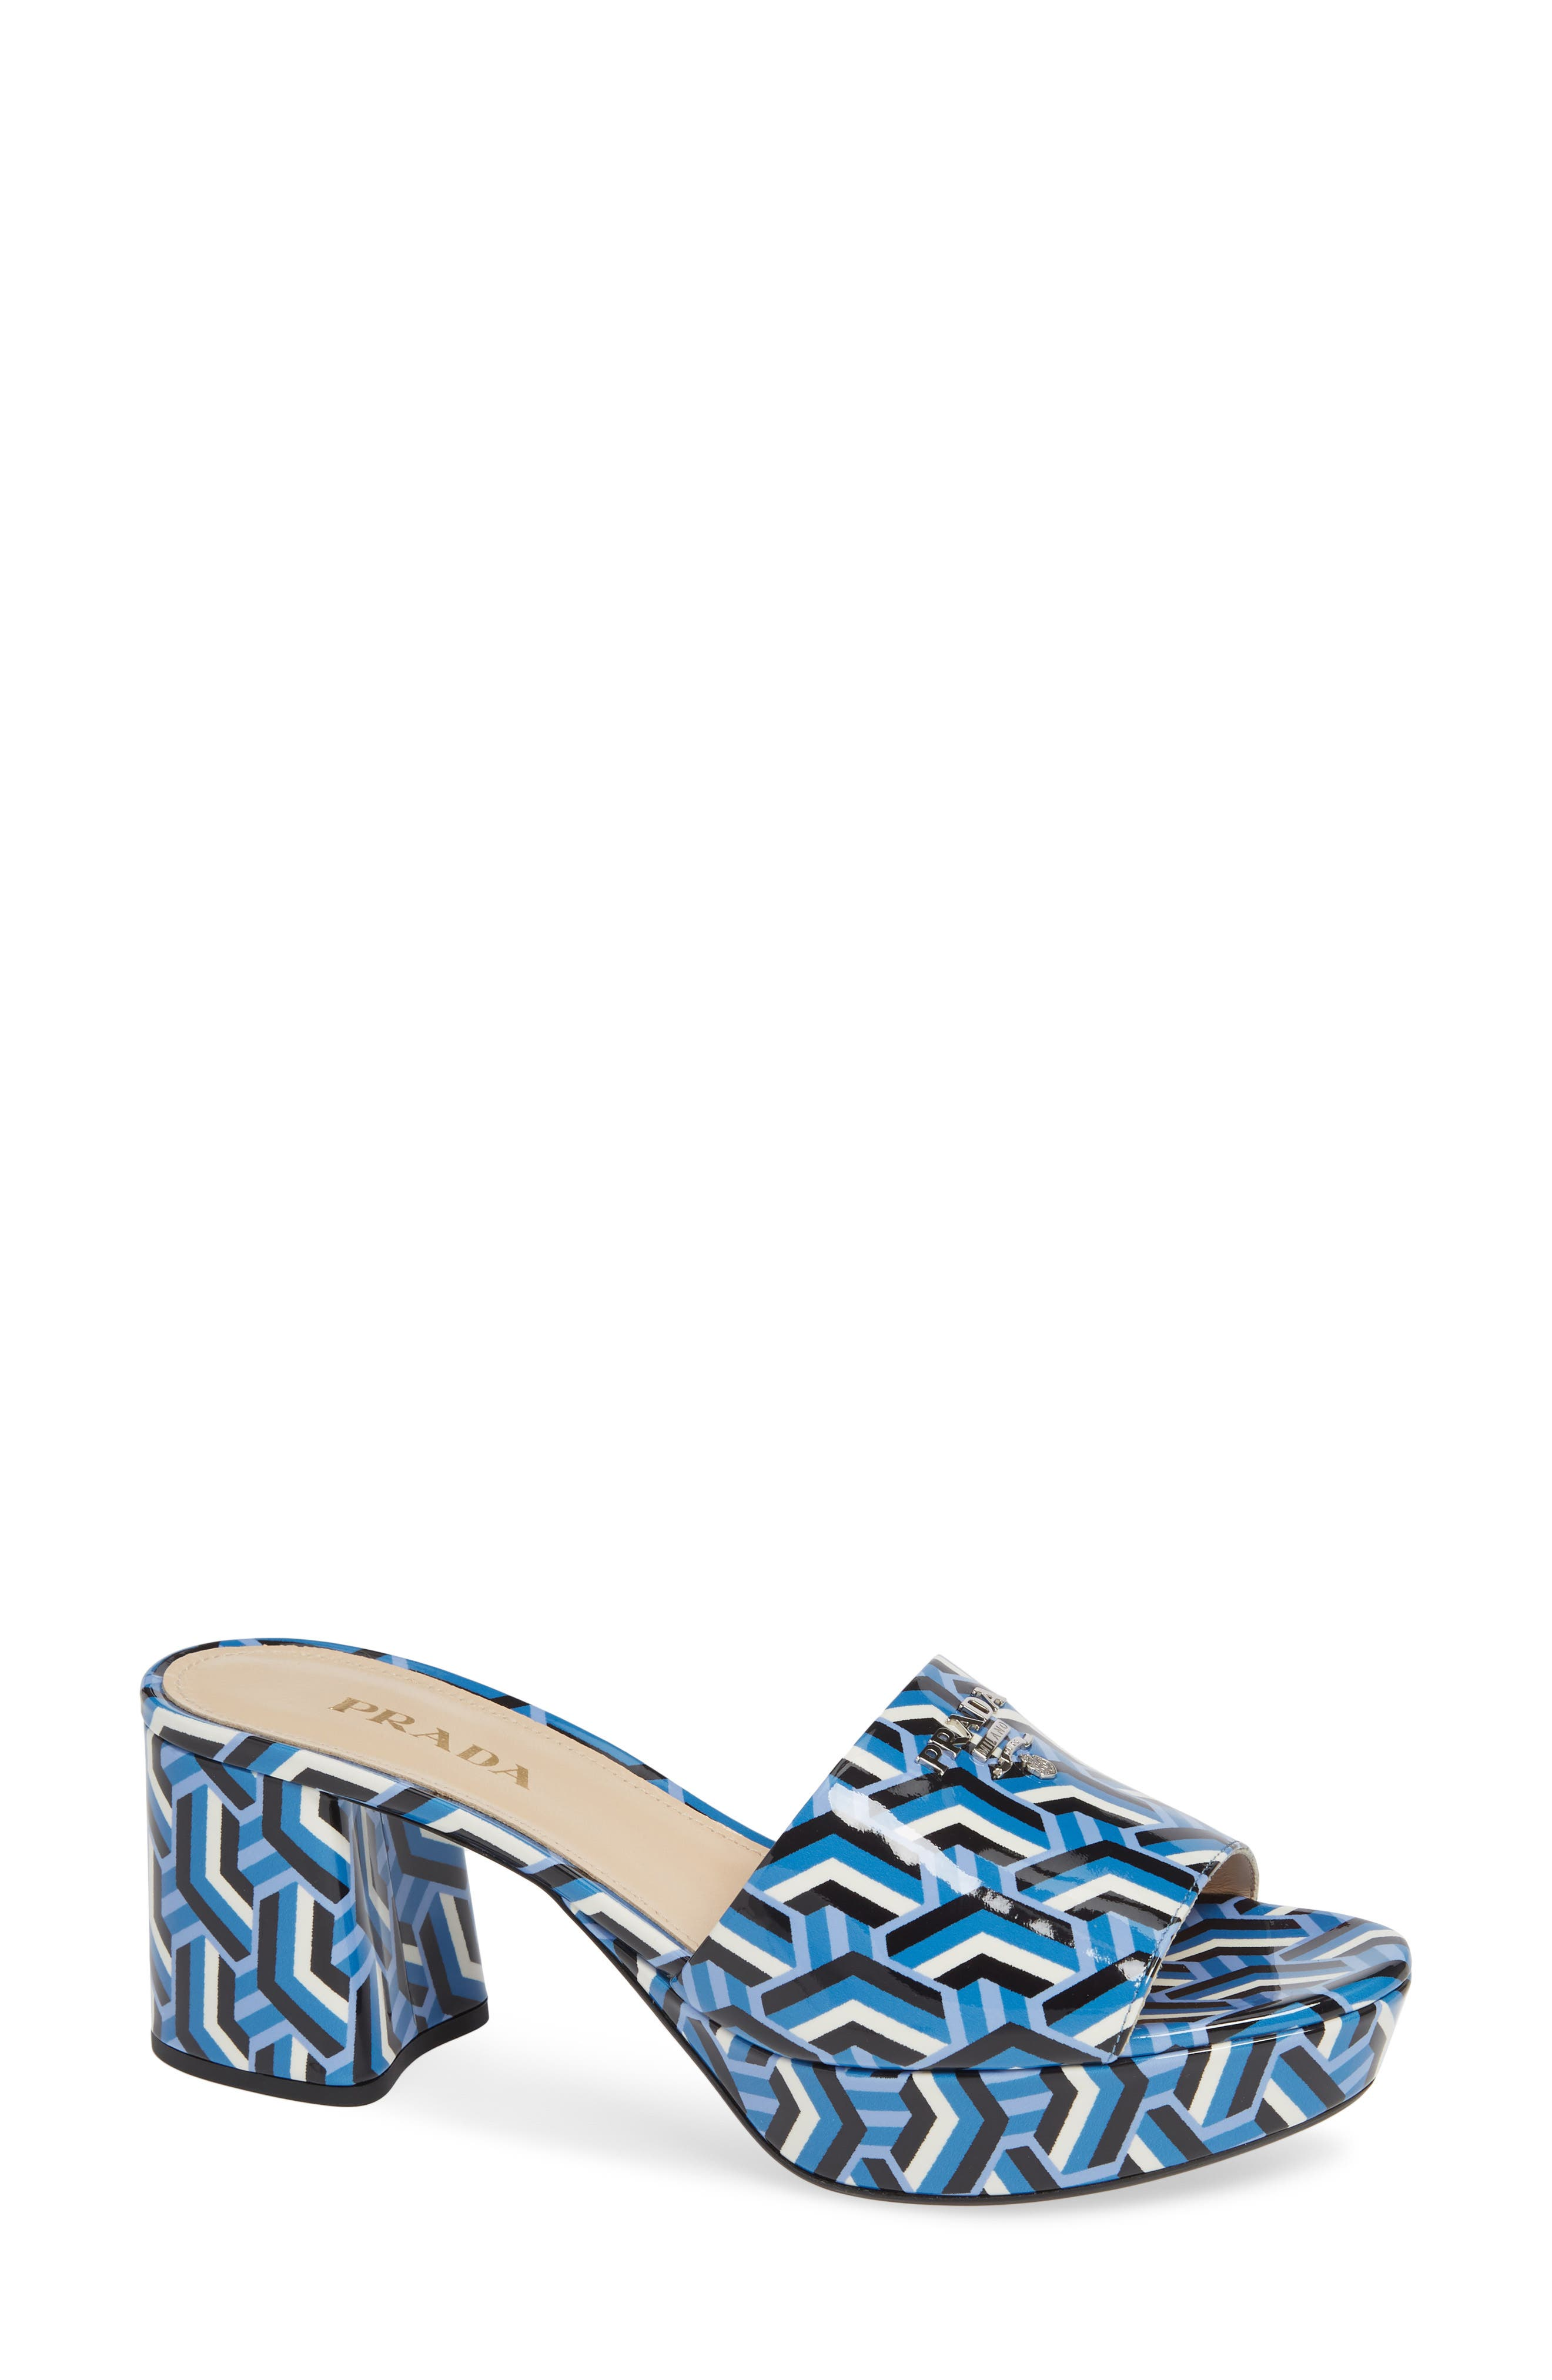 Geo Print Platform Slide,                             Main thumbnail 1, color,                             BLUE PRINT